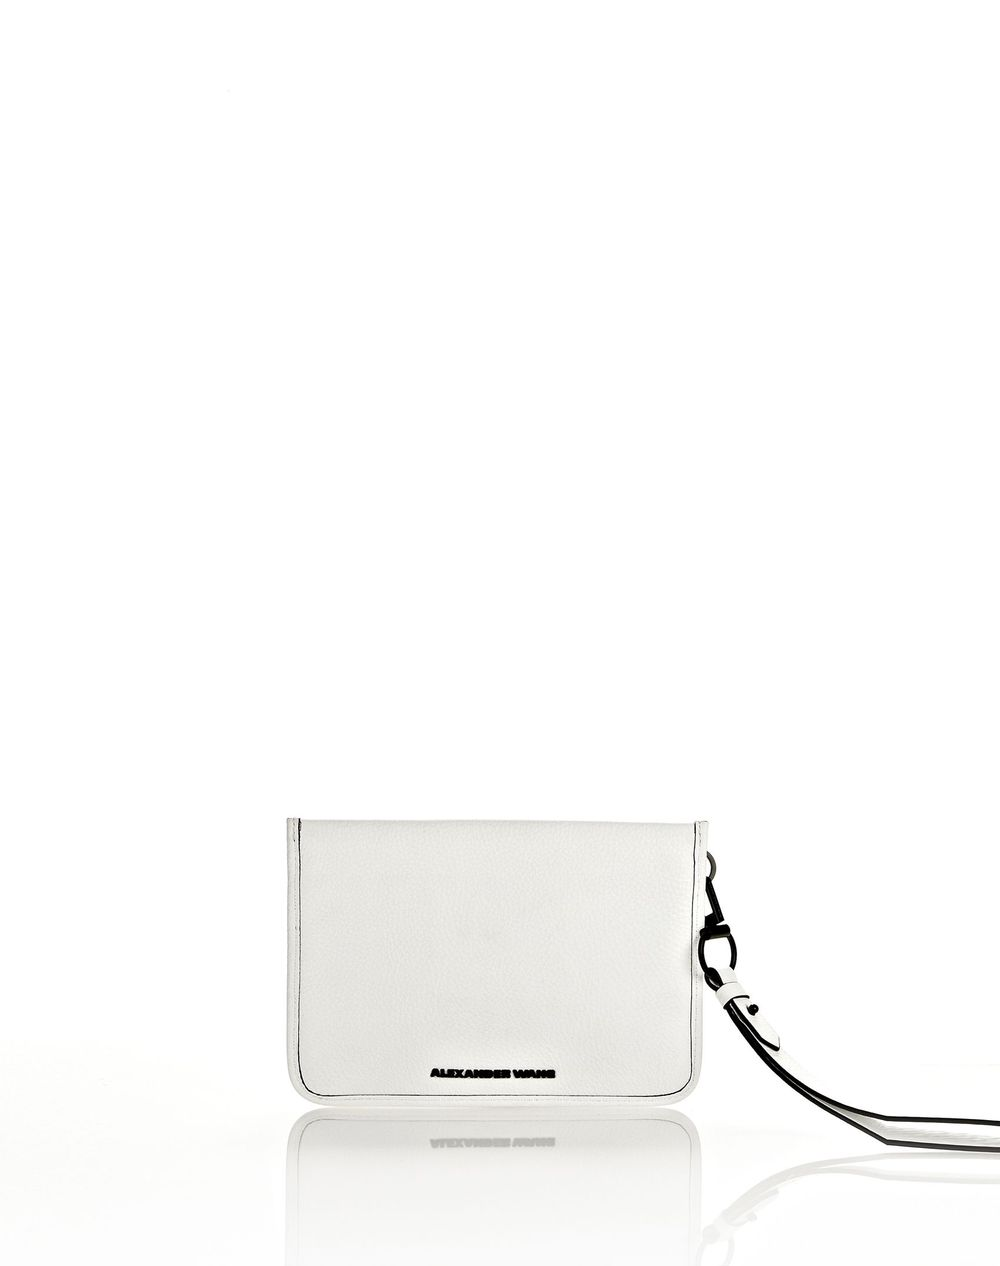 Alexander Wang Prisma Pochette Clutch in White with Matte Black ($260 Alexander Wang Shop)